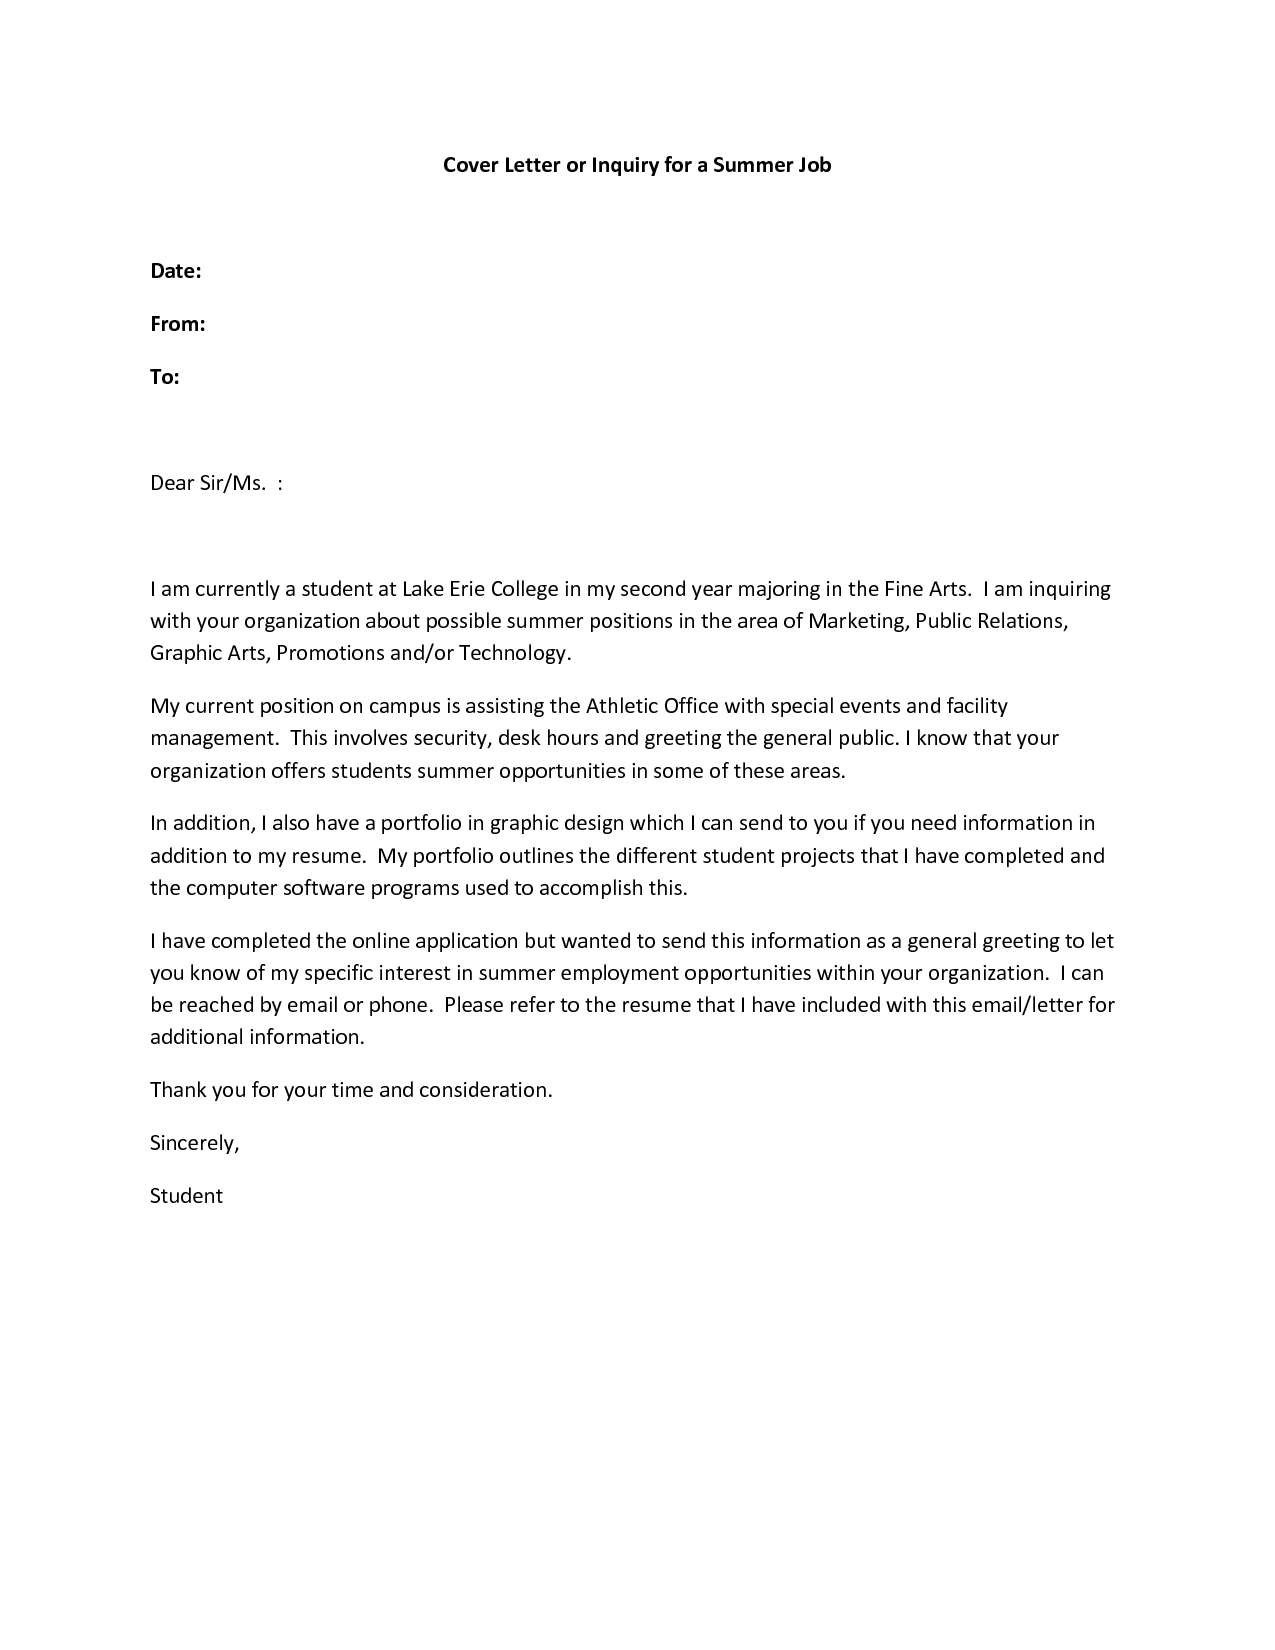 example of an email cover letter